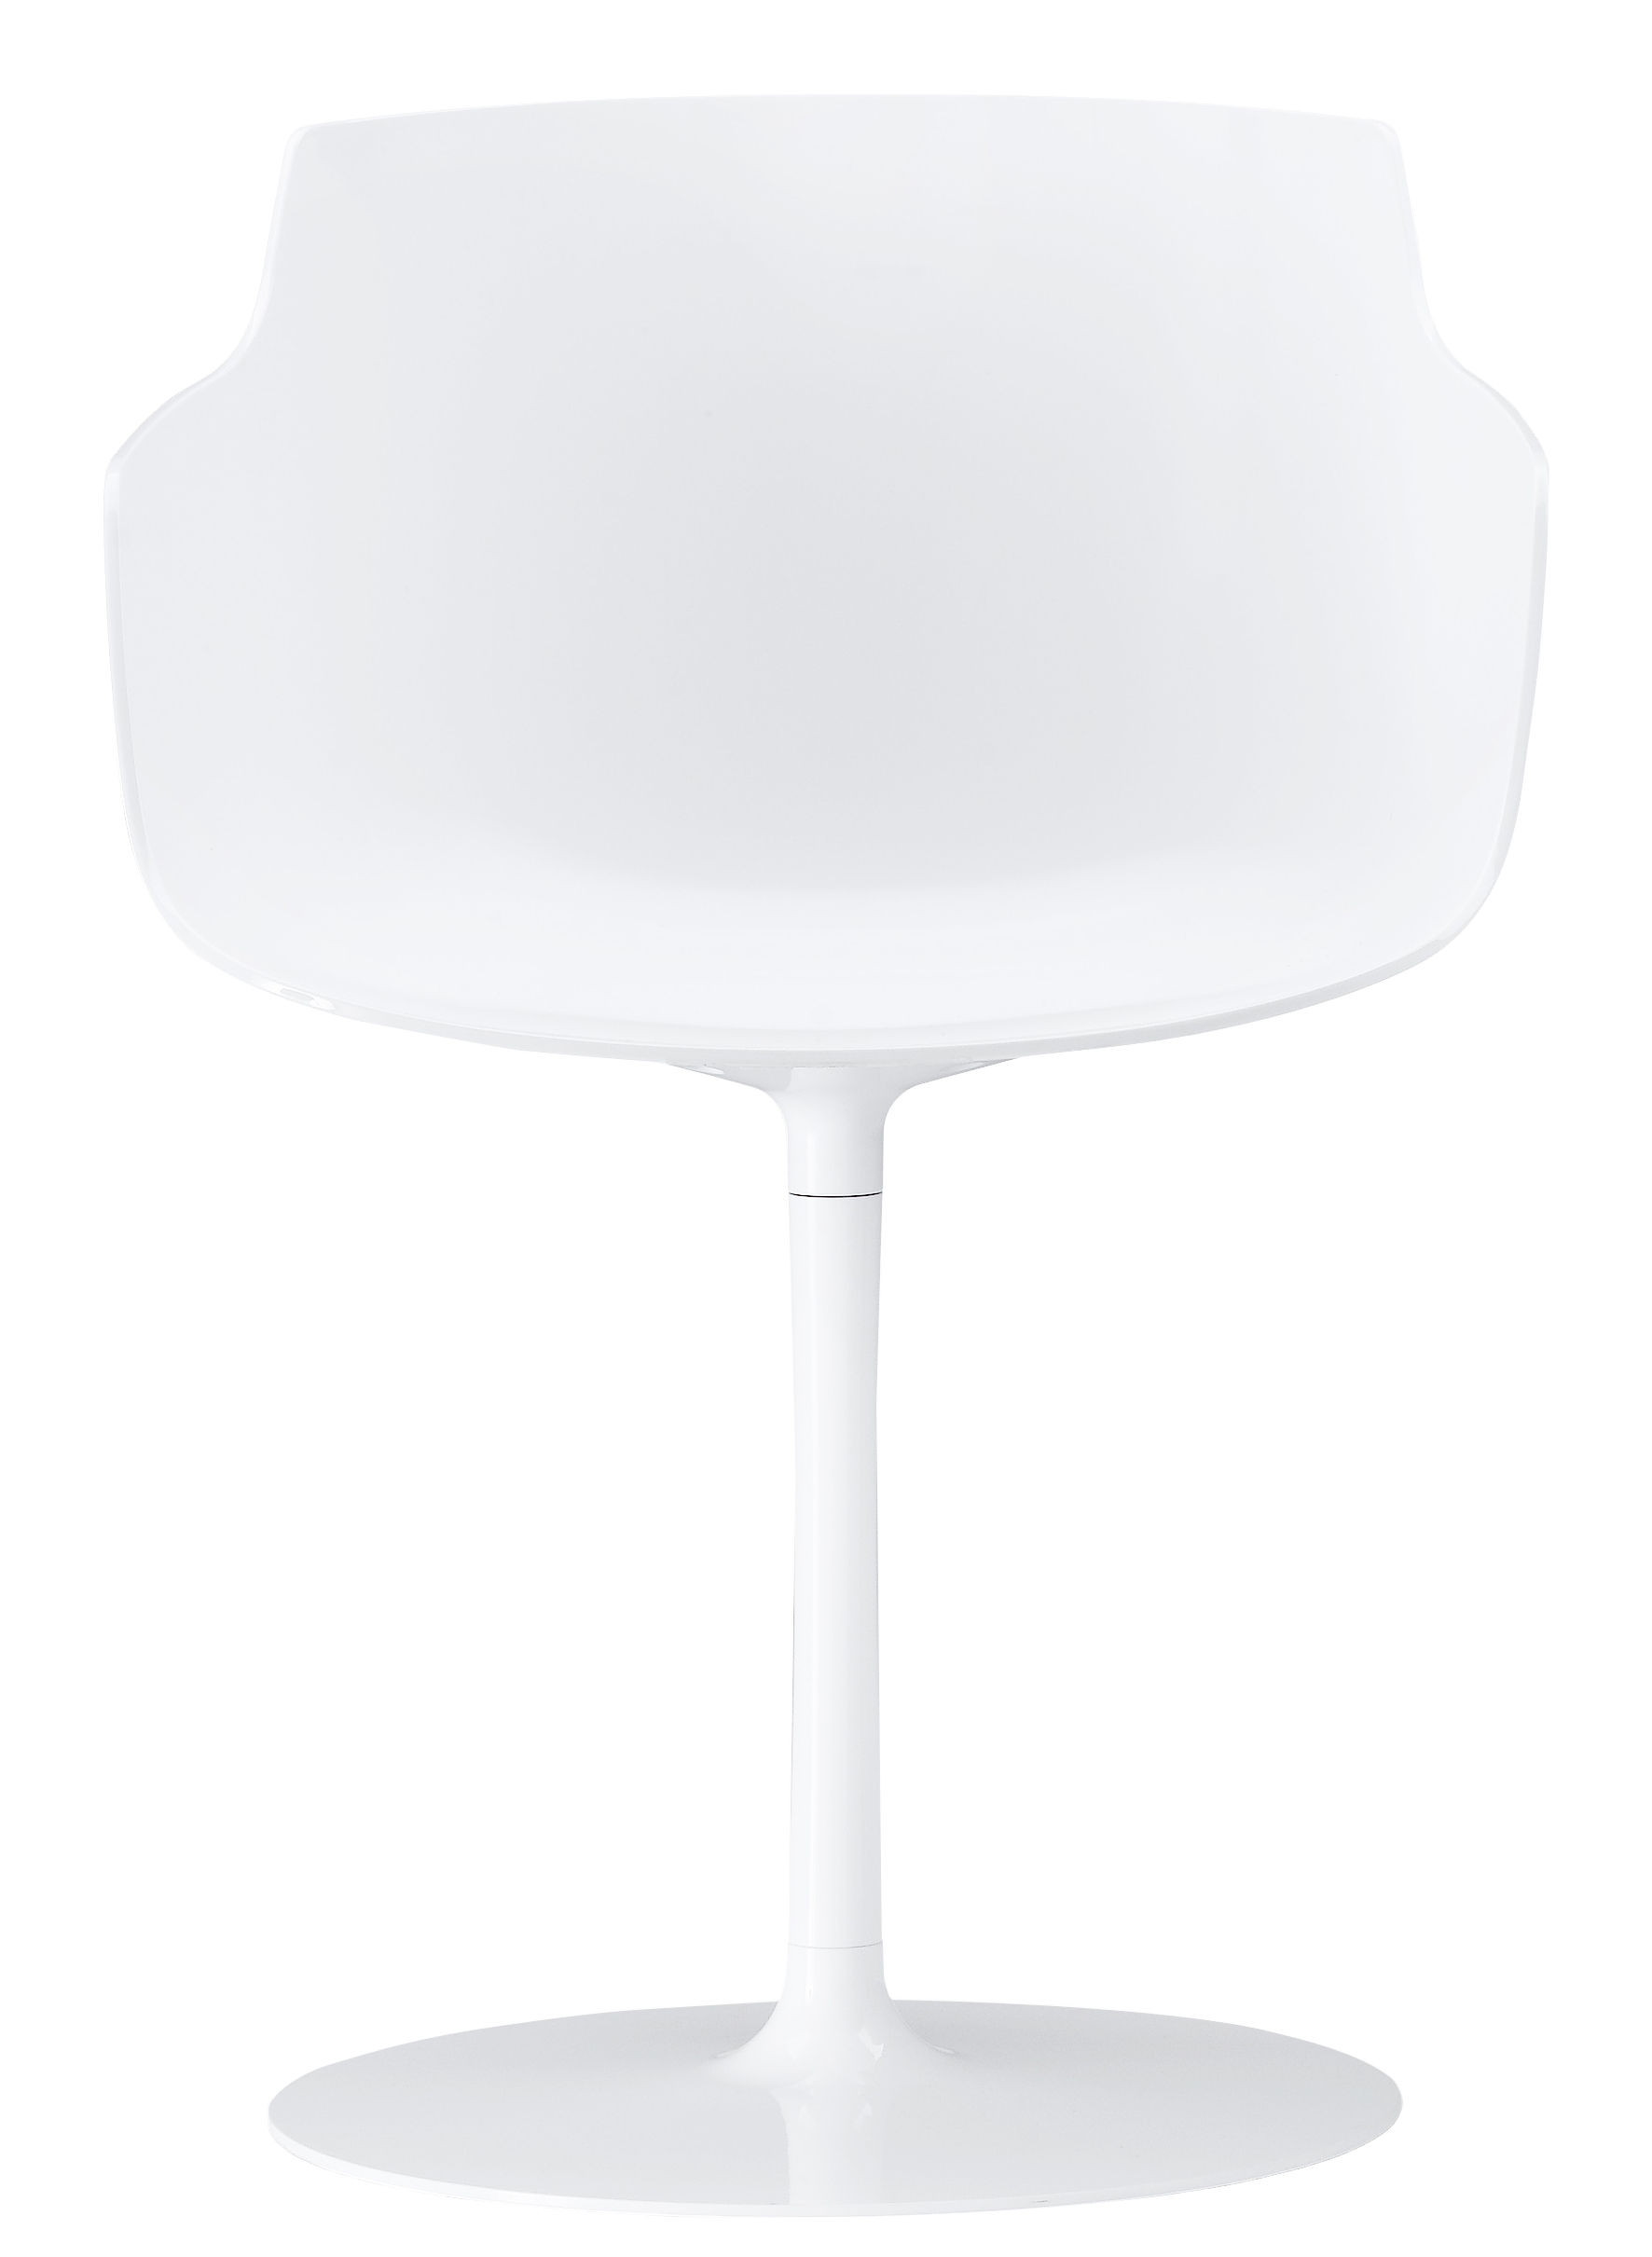 Furniture - Chairs - Flow Slim Swivel armchair - Central leg by MDF Italia - White / White leg - Lacquered aluminium, Polycarbonate